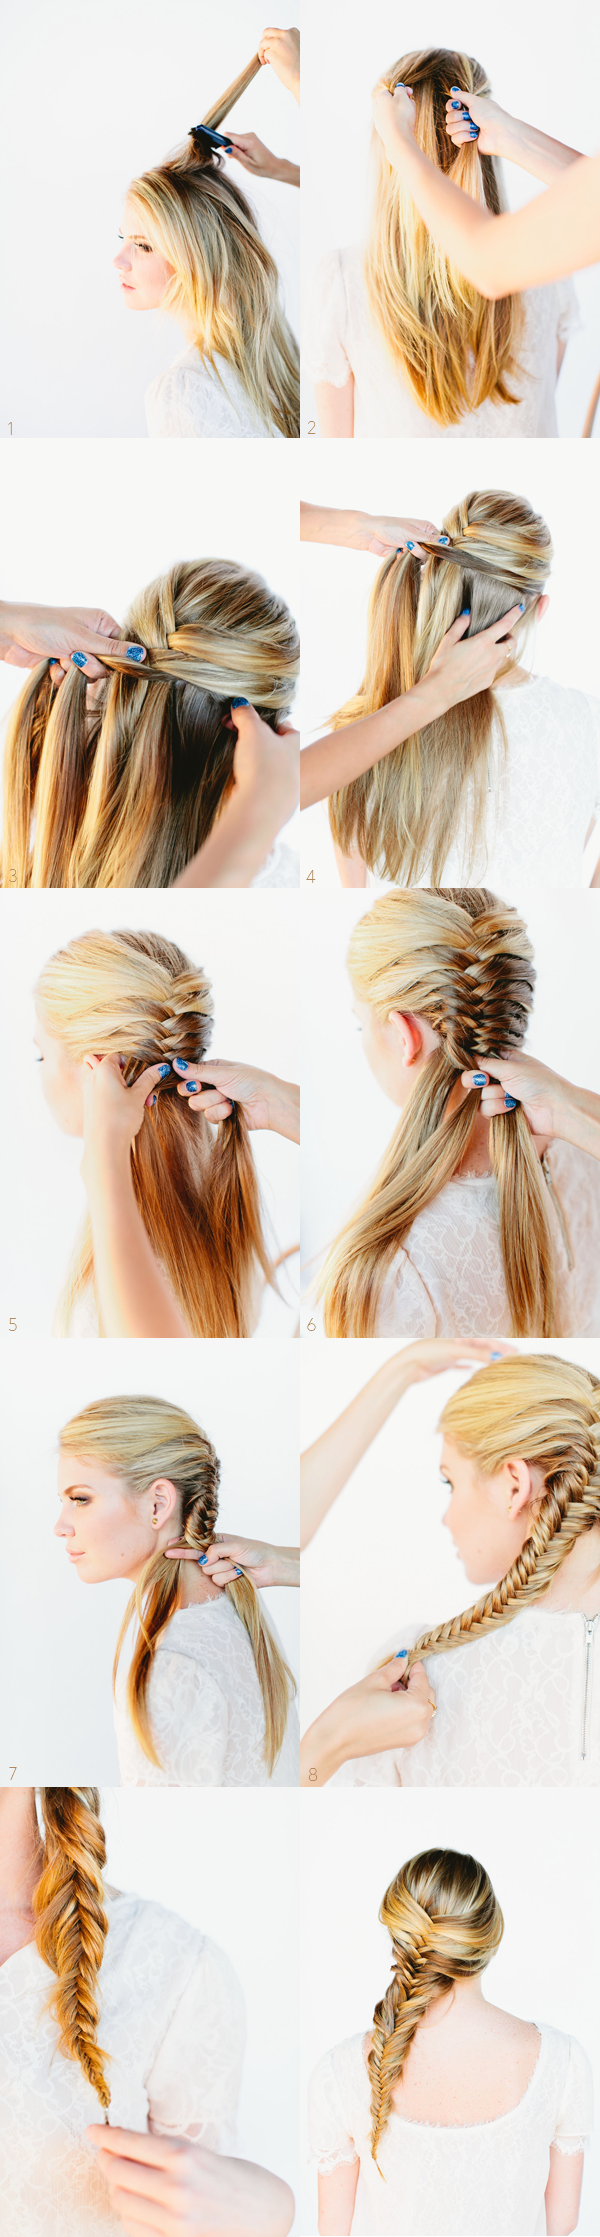 FISHTAIL-BRAID-HAIR